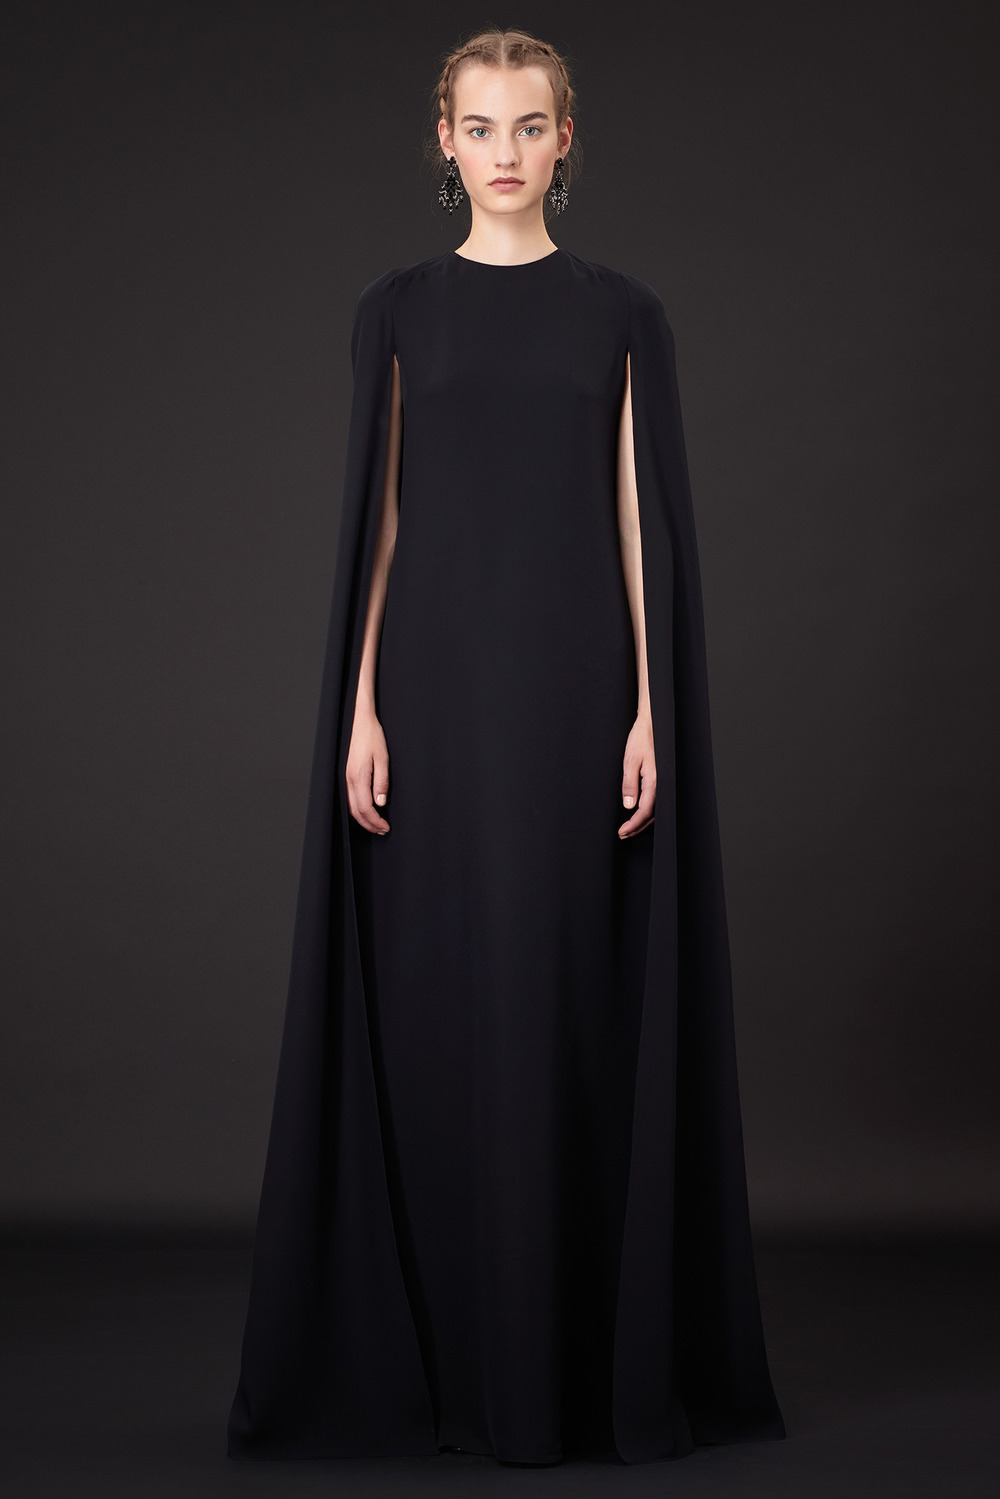 Fashion Report — VALENTINO RESORT 2015